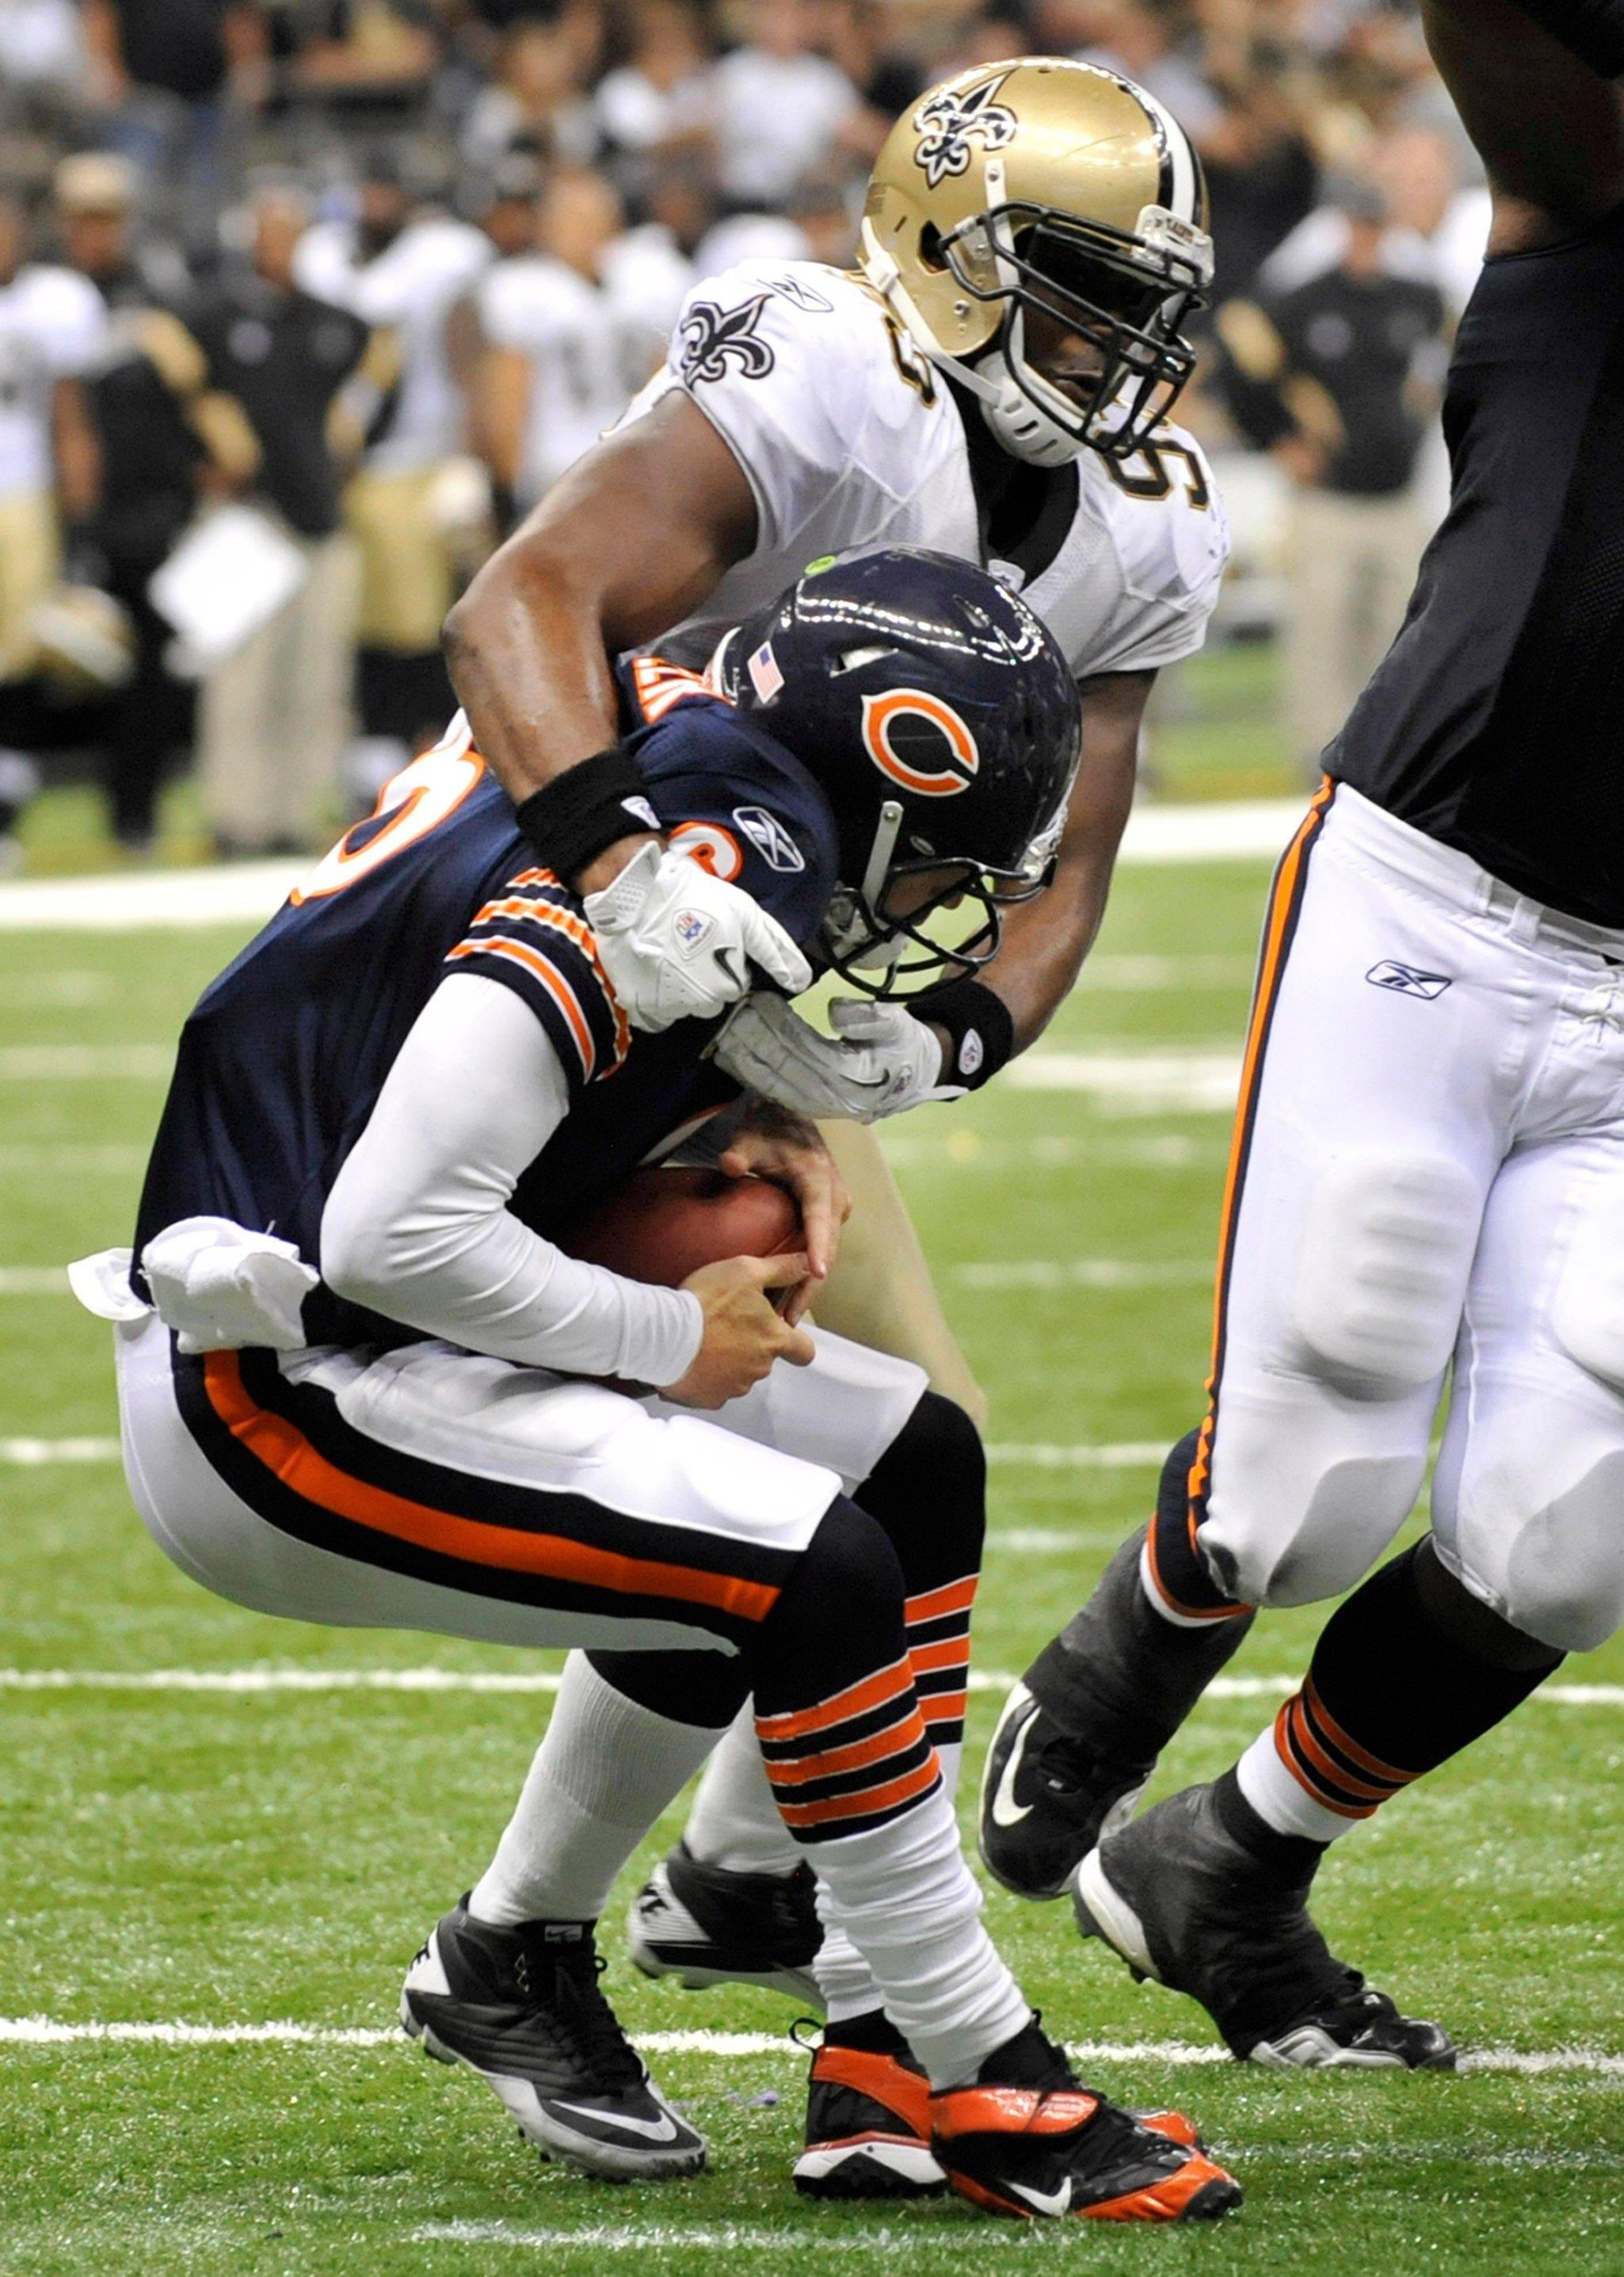 Bears quarterback Jay Cutler is sacked by Saints defensive end Junior Galette during the fourth quarter Sunday in New Orleans.